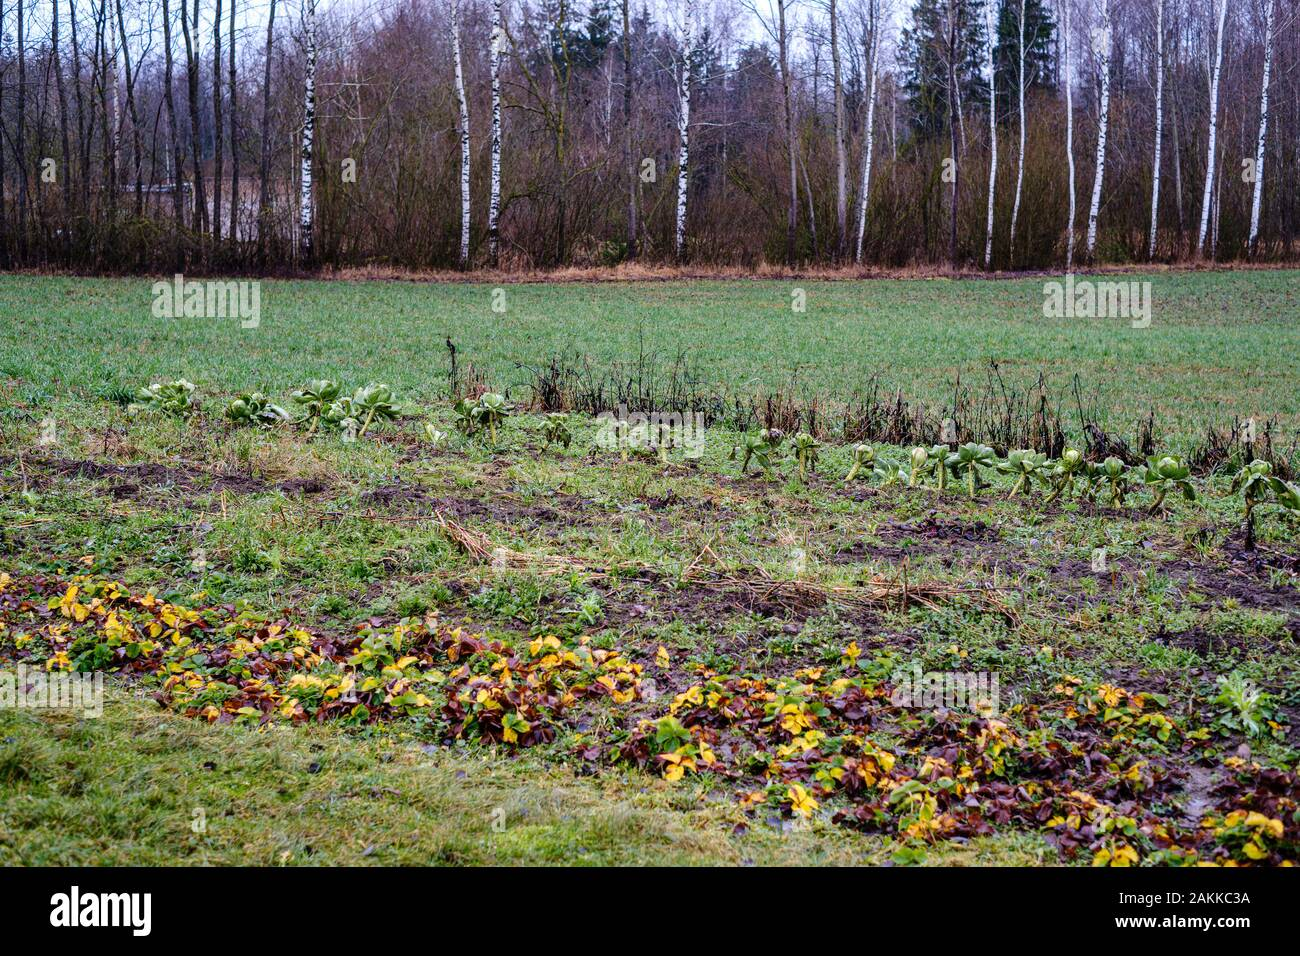 Late Garden In Autumn With Frozen Vegetables In The Field Stock